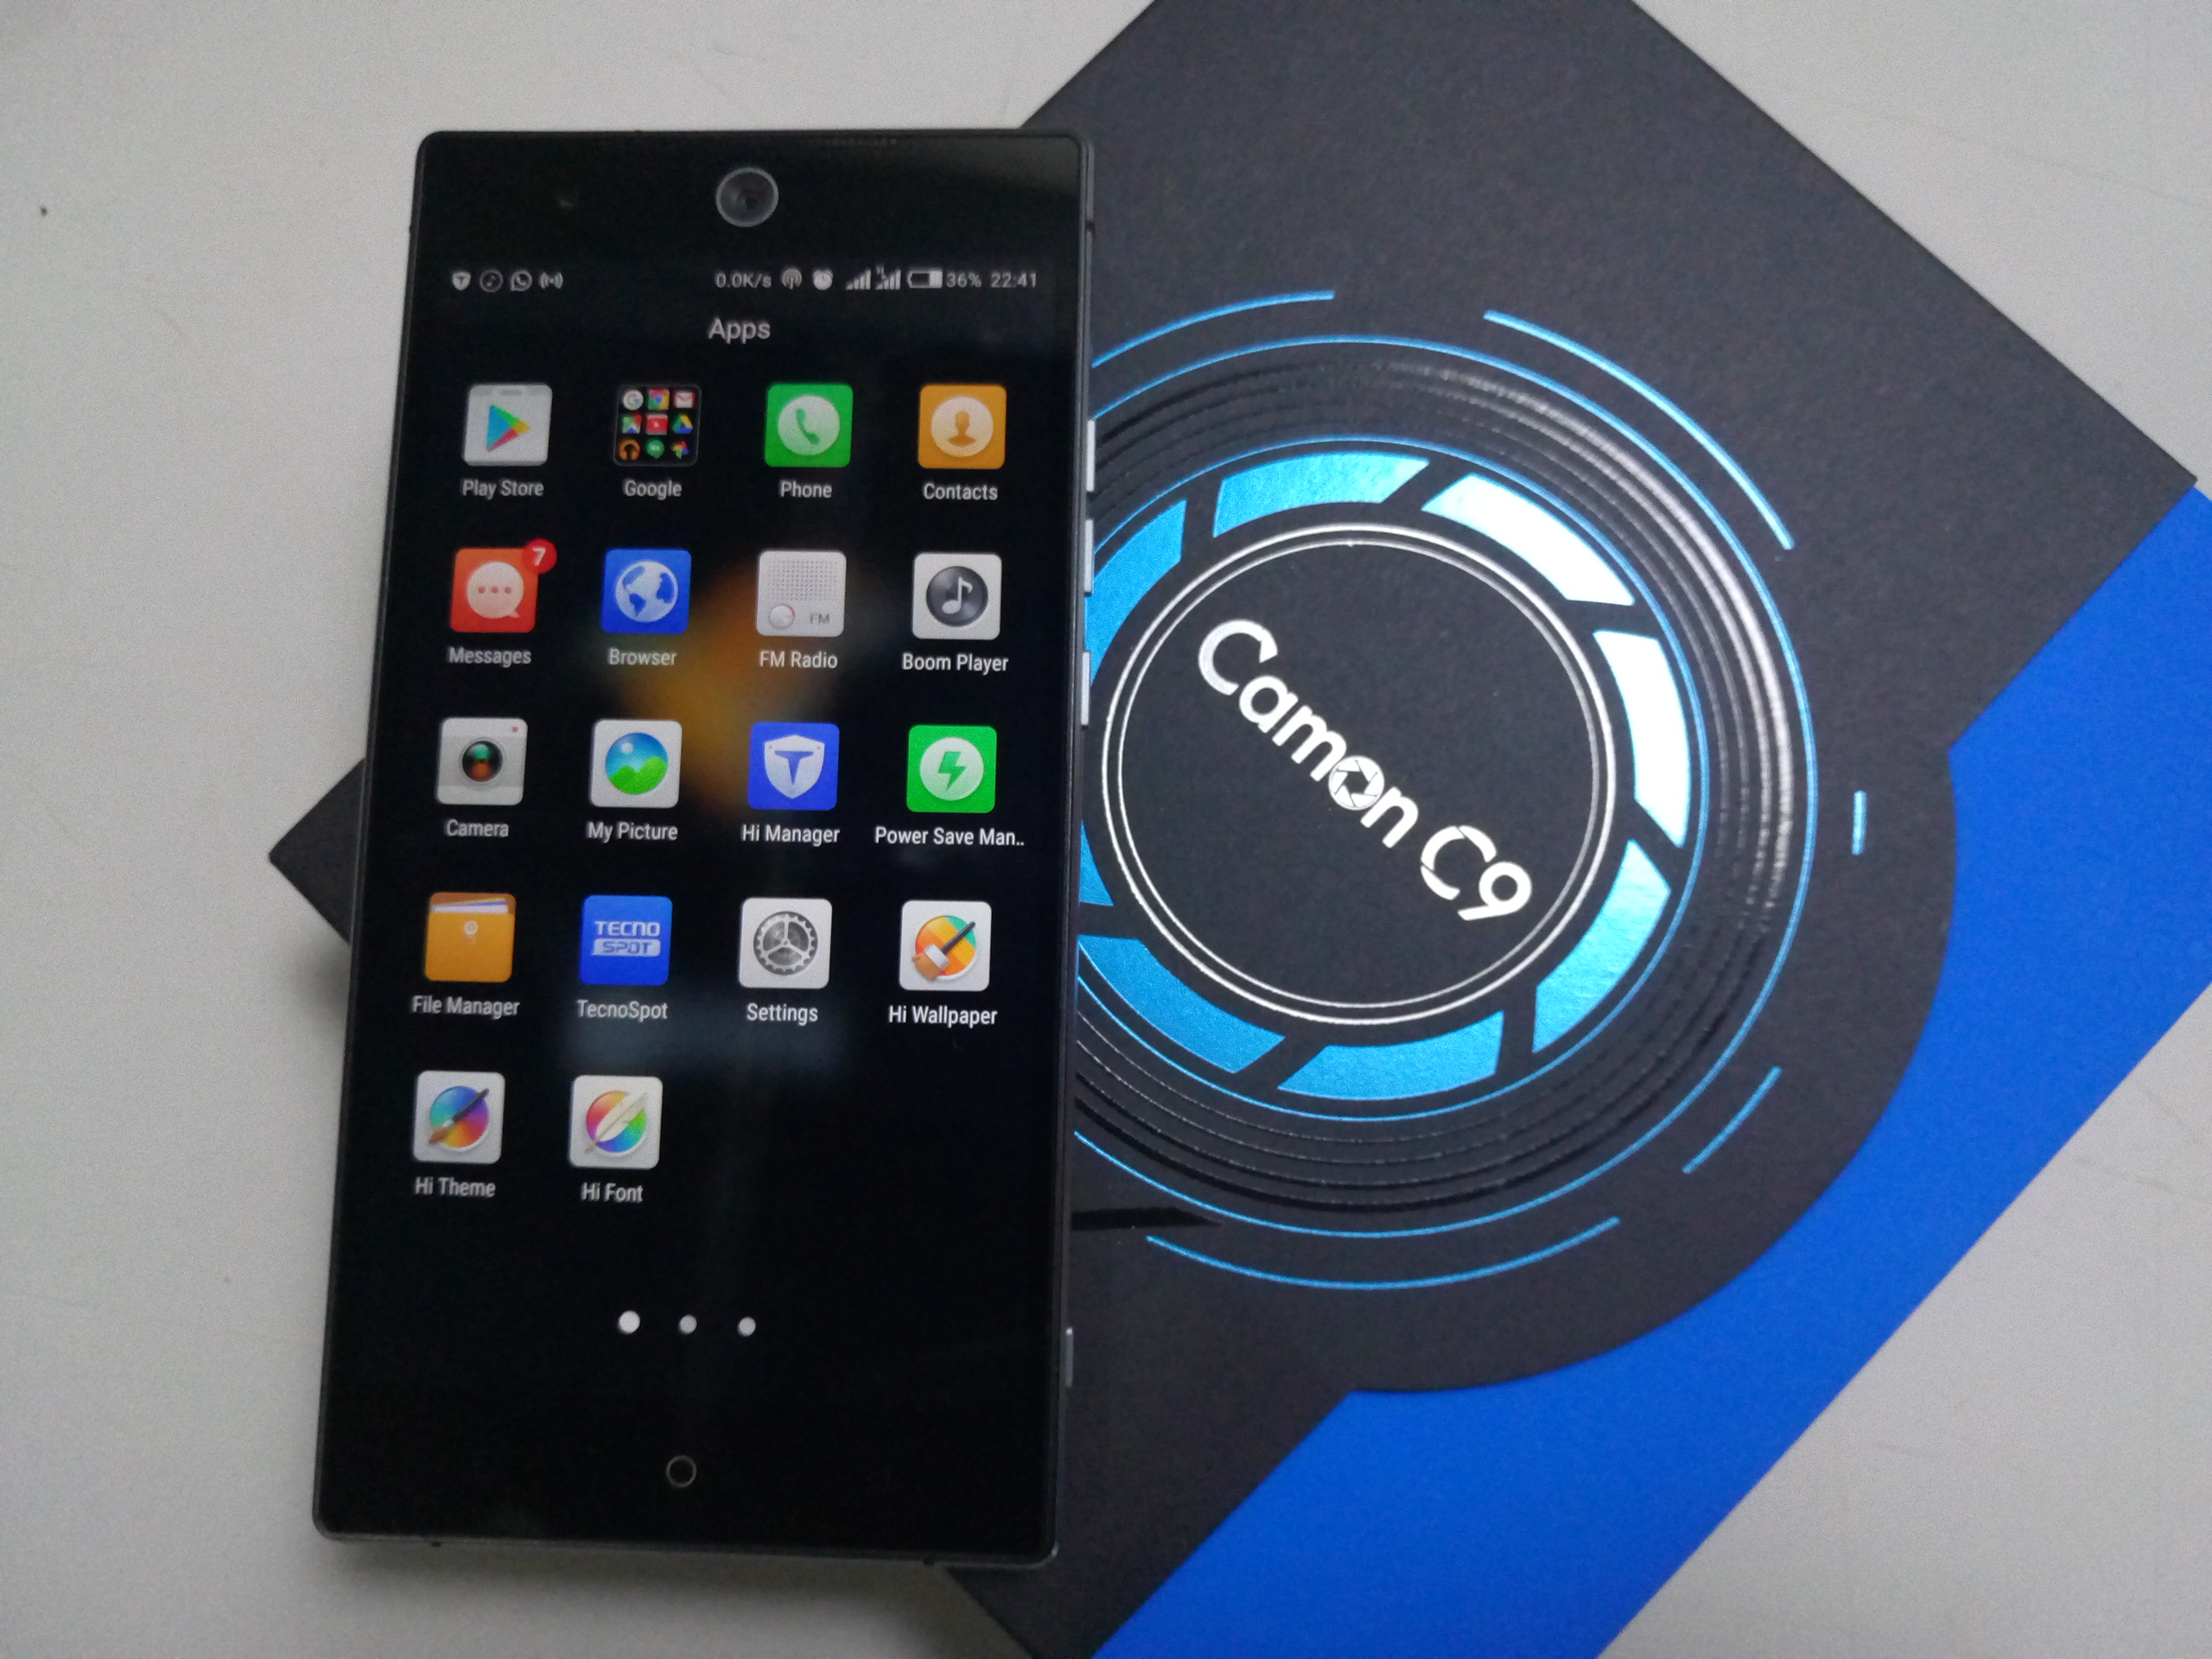 Satellite Tv And Internet >> The Tecno Camon C9 Review; More Than A Selfie Phone - Techsawa